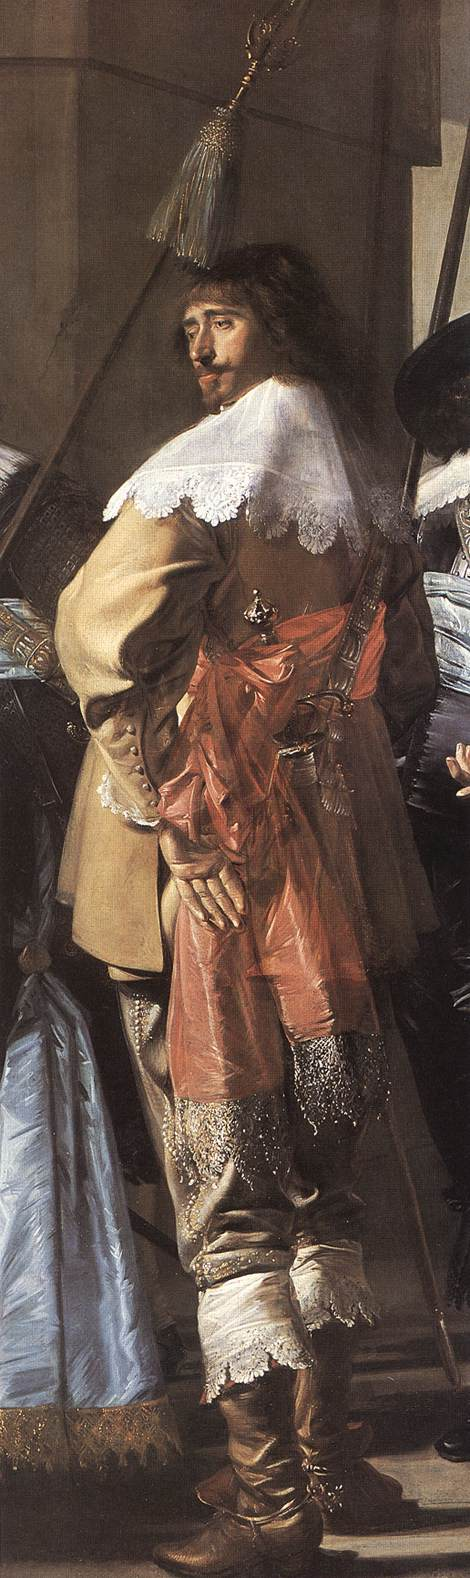 The Meagre Company (Detail) 3 1633-37 | Frans Hals | Oil Painting